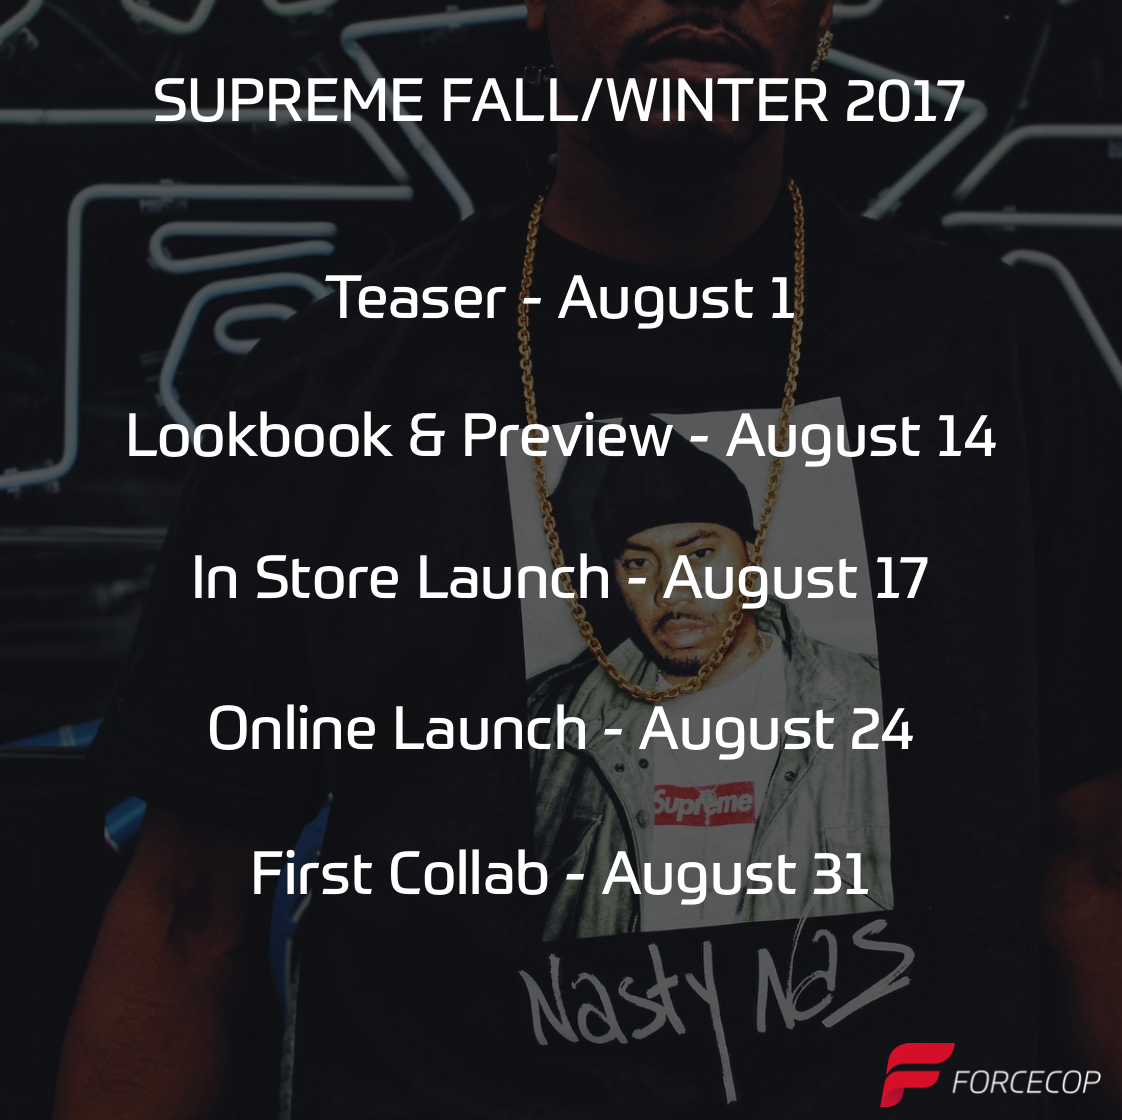 When Does the Supreme FW17 Season Start?